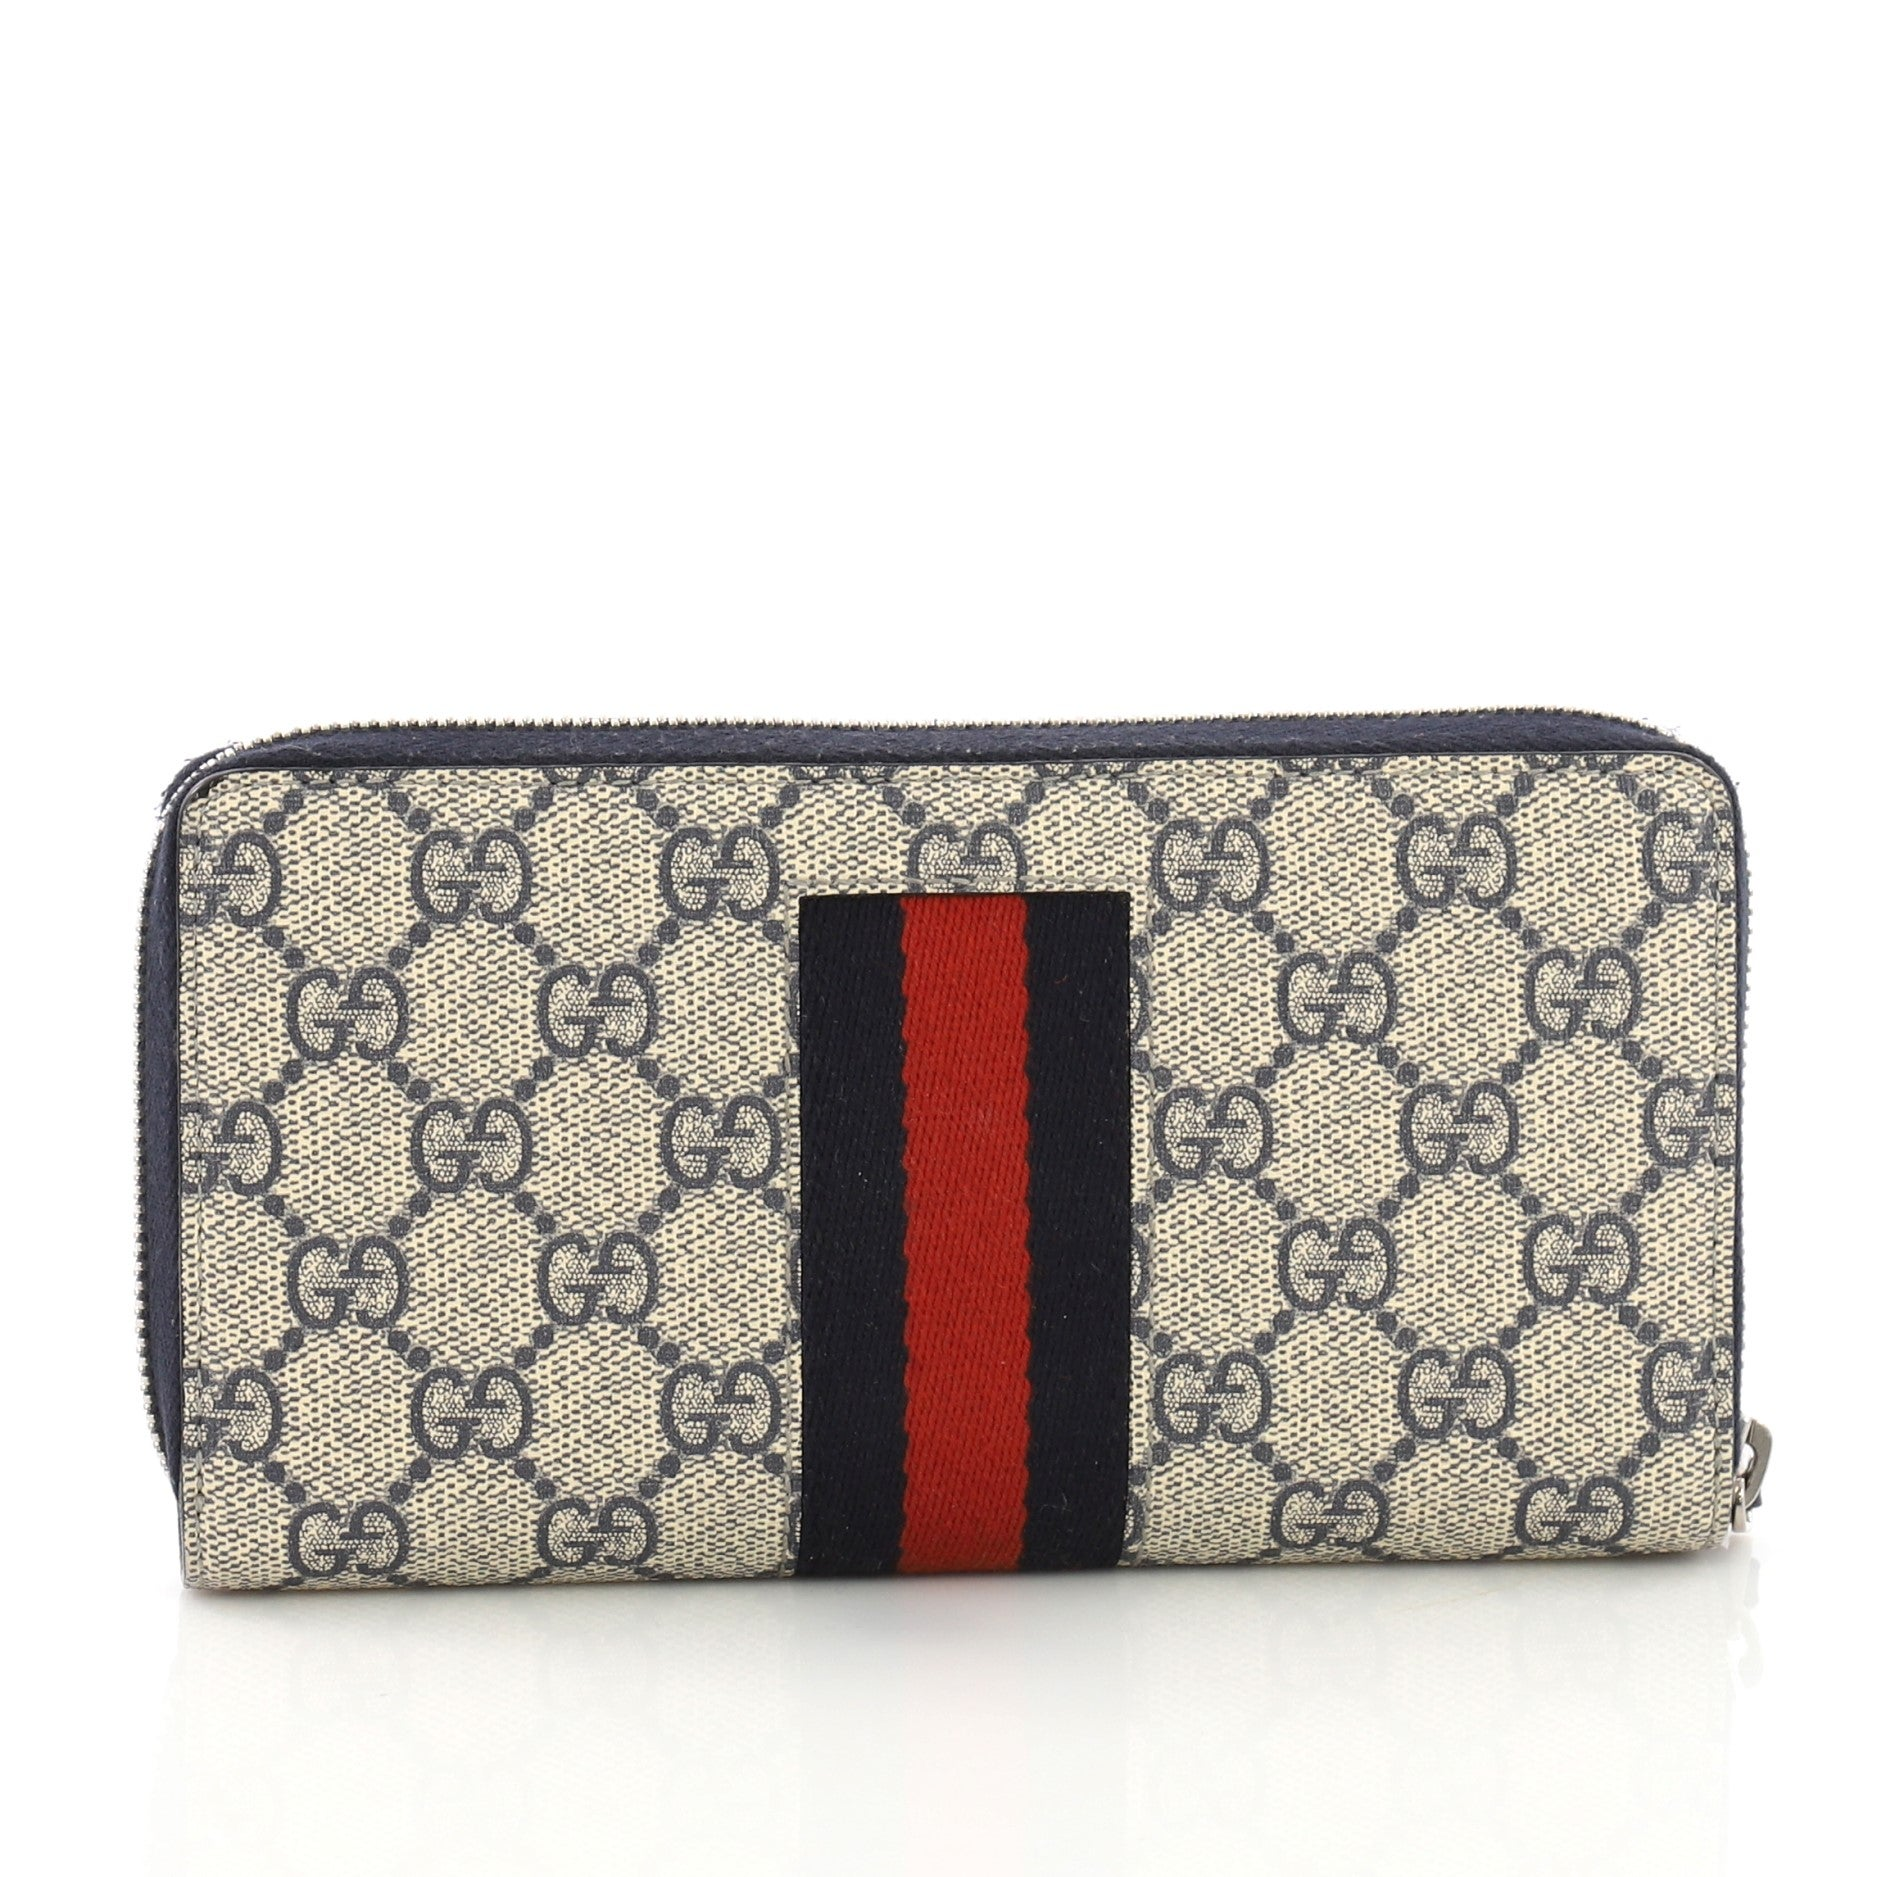 3c95f454a2d6 Gucci Web Zip Around Wallet GG Coated Canvas at 1stdibs